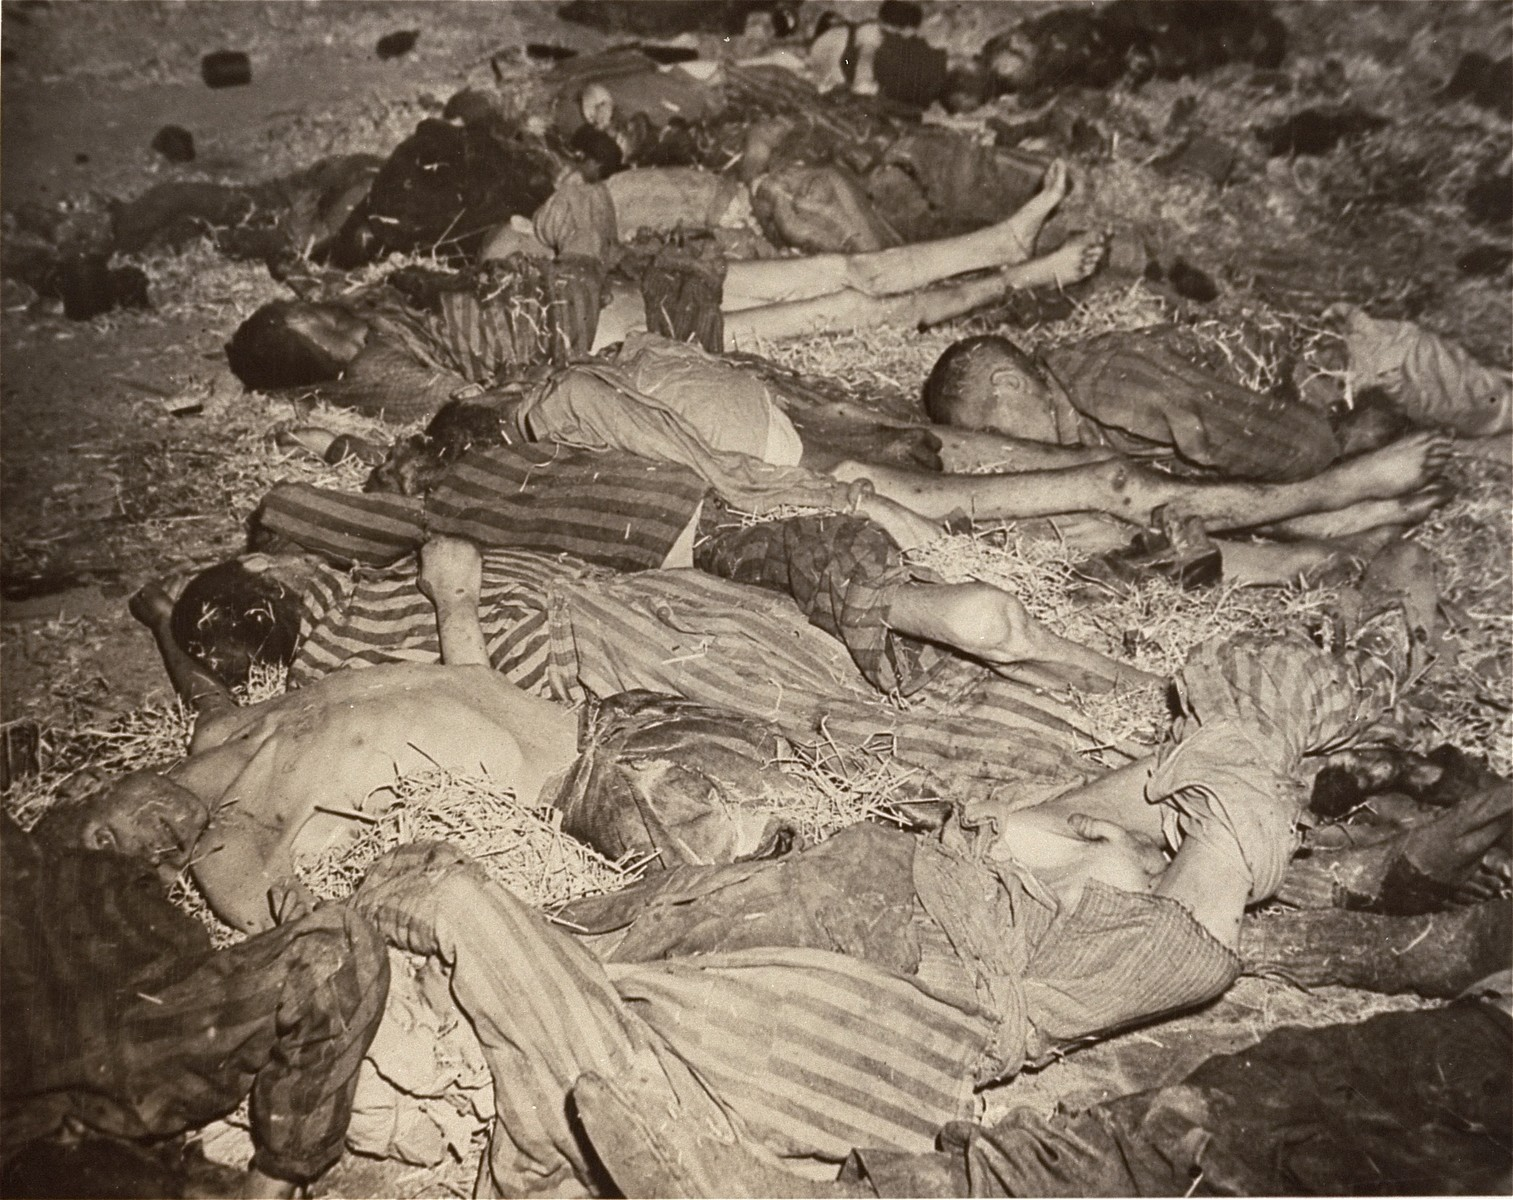 The bodies of prisoners lie on the ground inside barracks in the Nordhausen concentration camp.